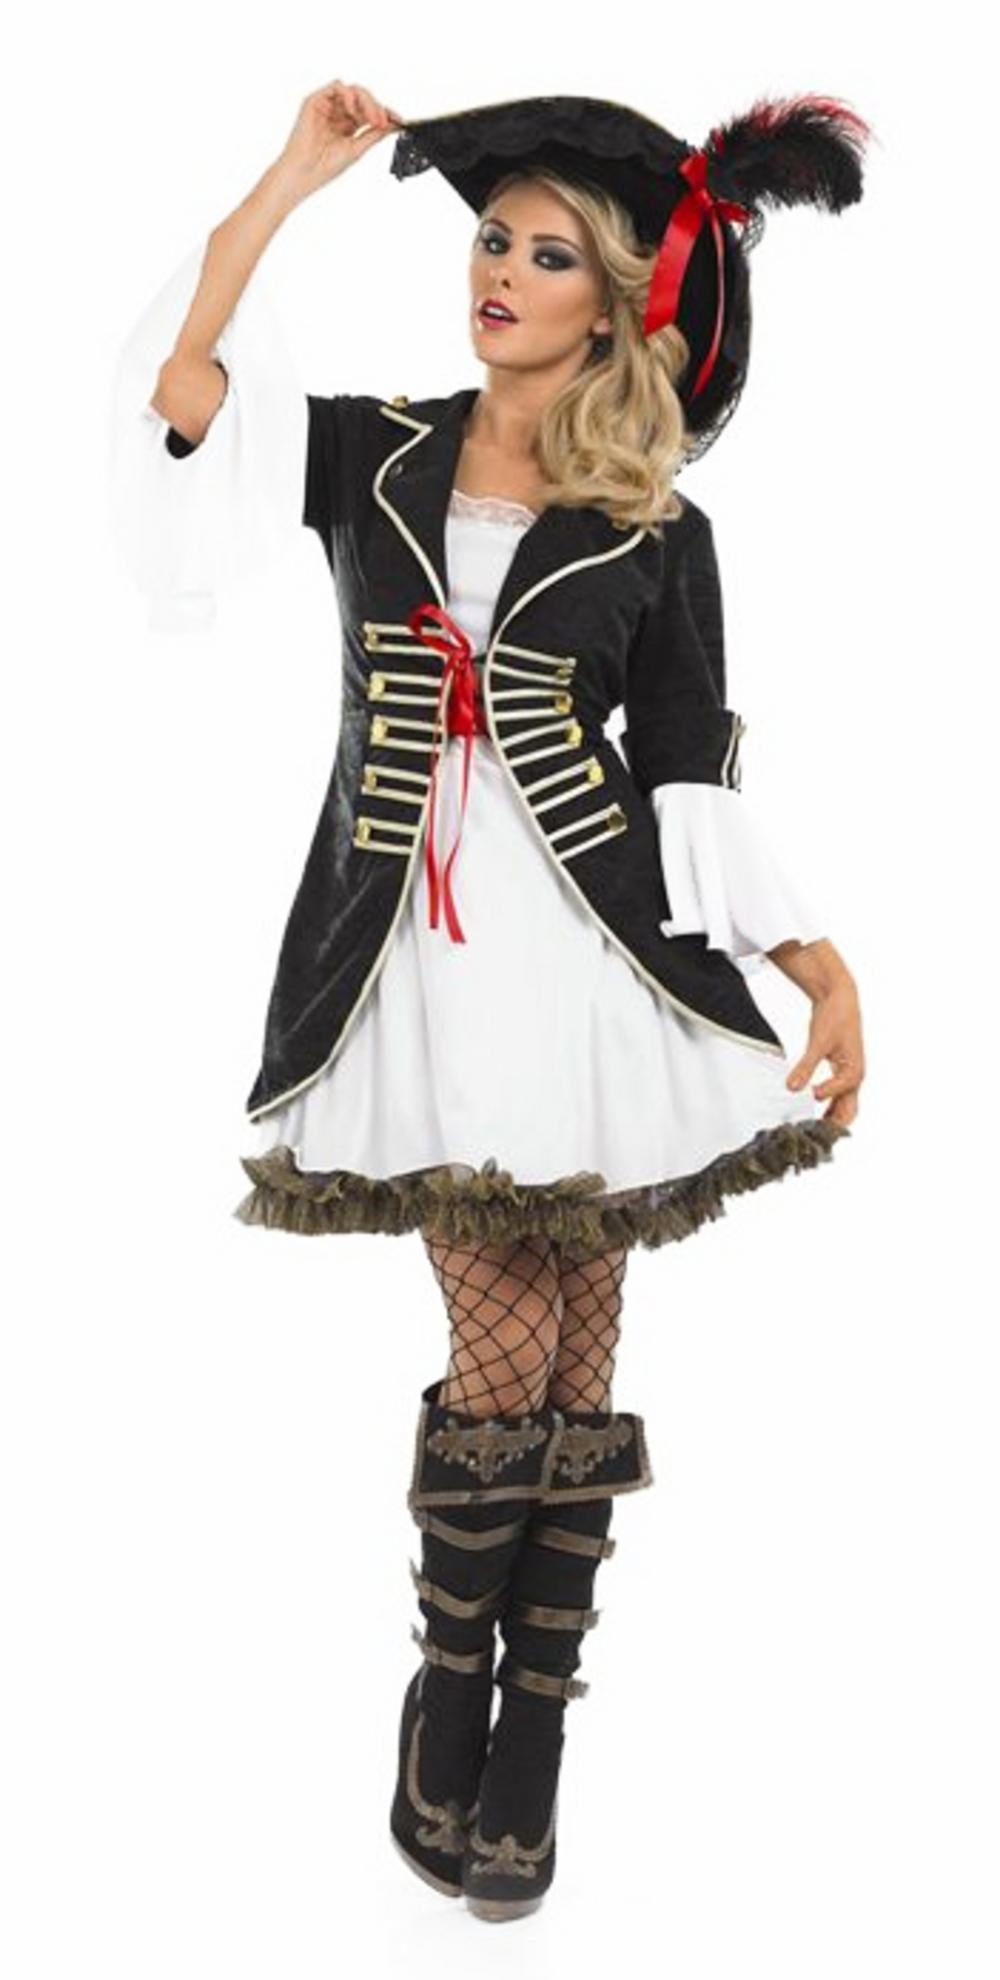 Buccaneer Girl Costume